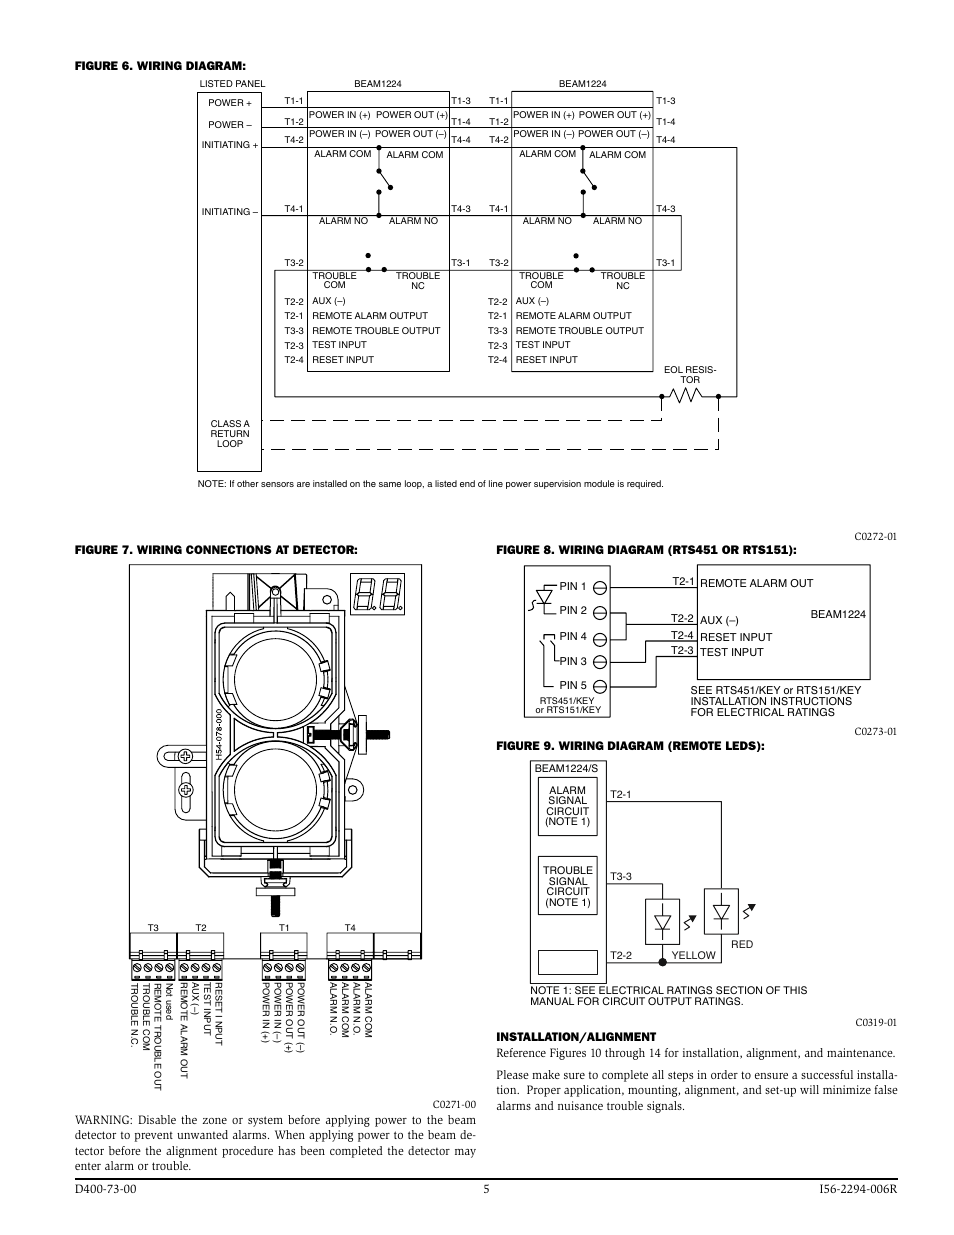 system sensor beam1224 beam1224s page5 system sensor beam1224, beam1224s user manual page 5 13 5R55E Transmission Wiring Diagram at bakdesigns.co